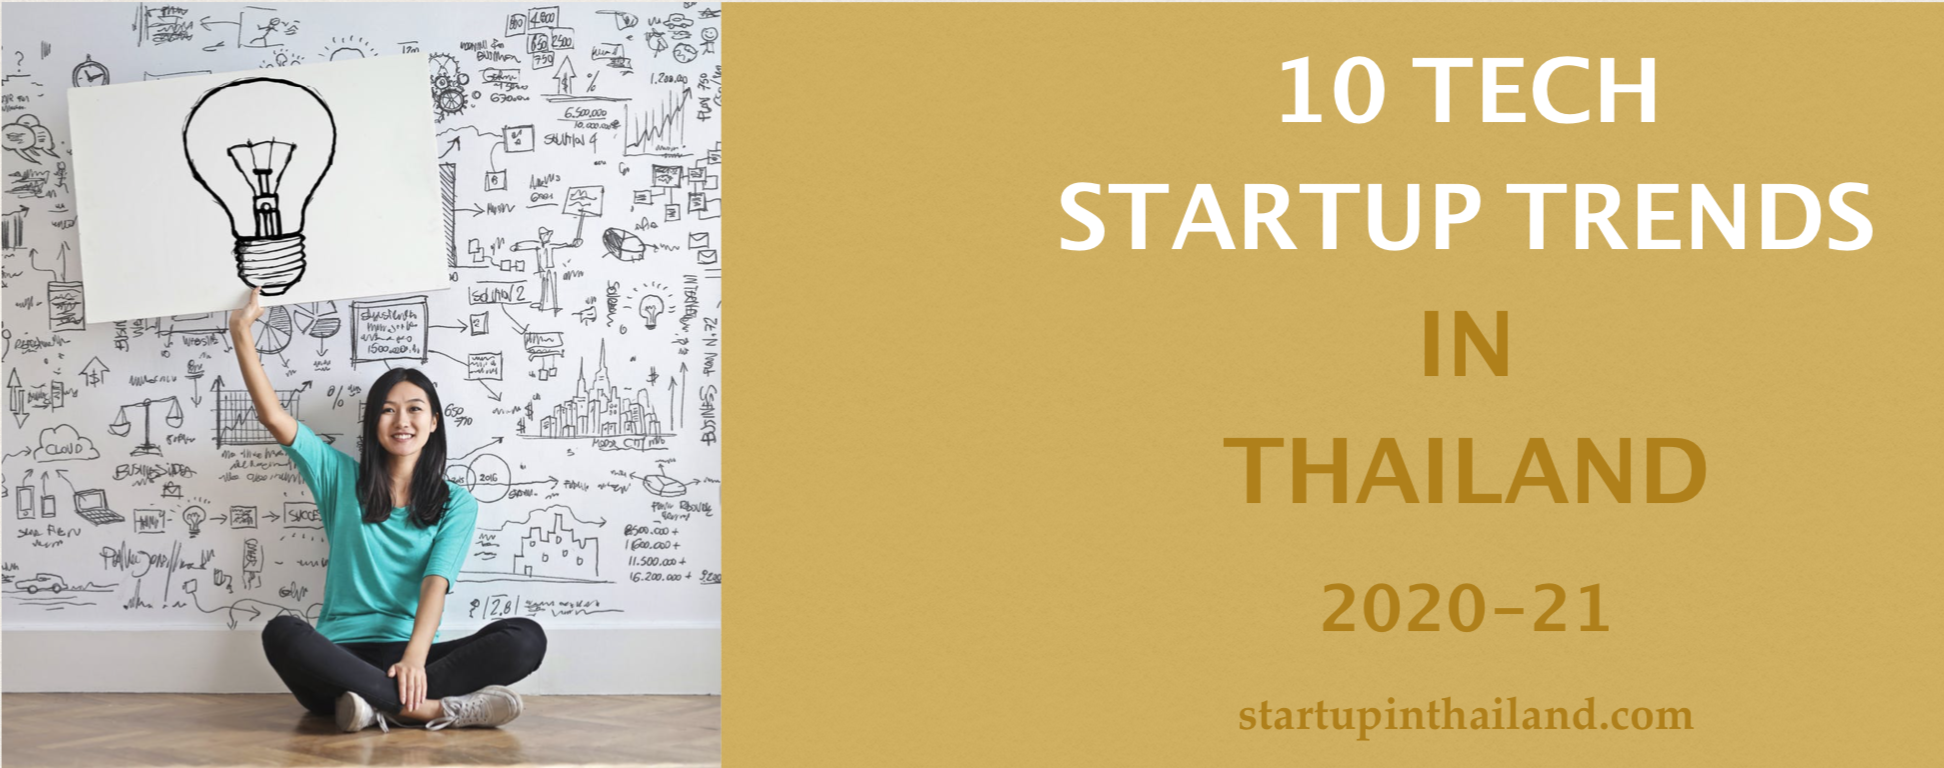 10 tech startup trends in thailand